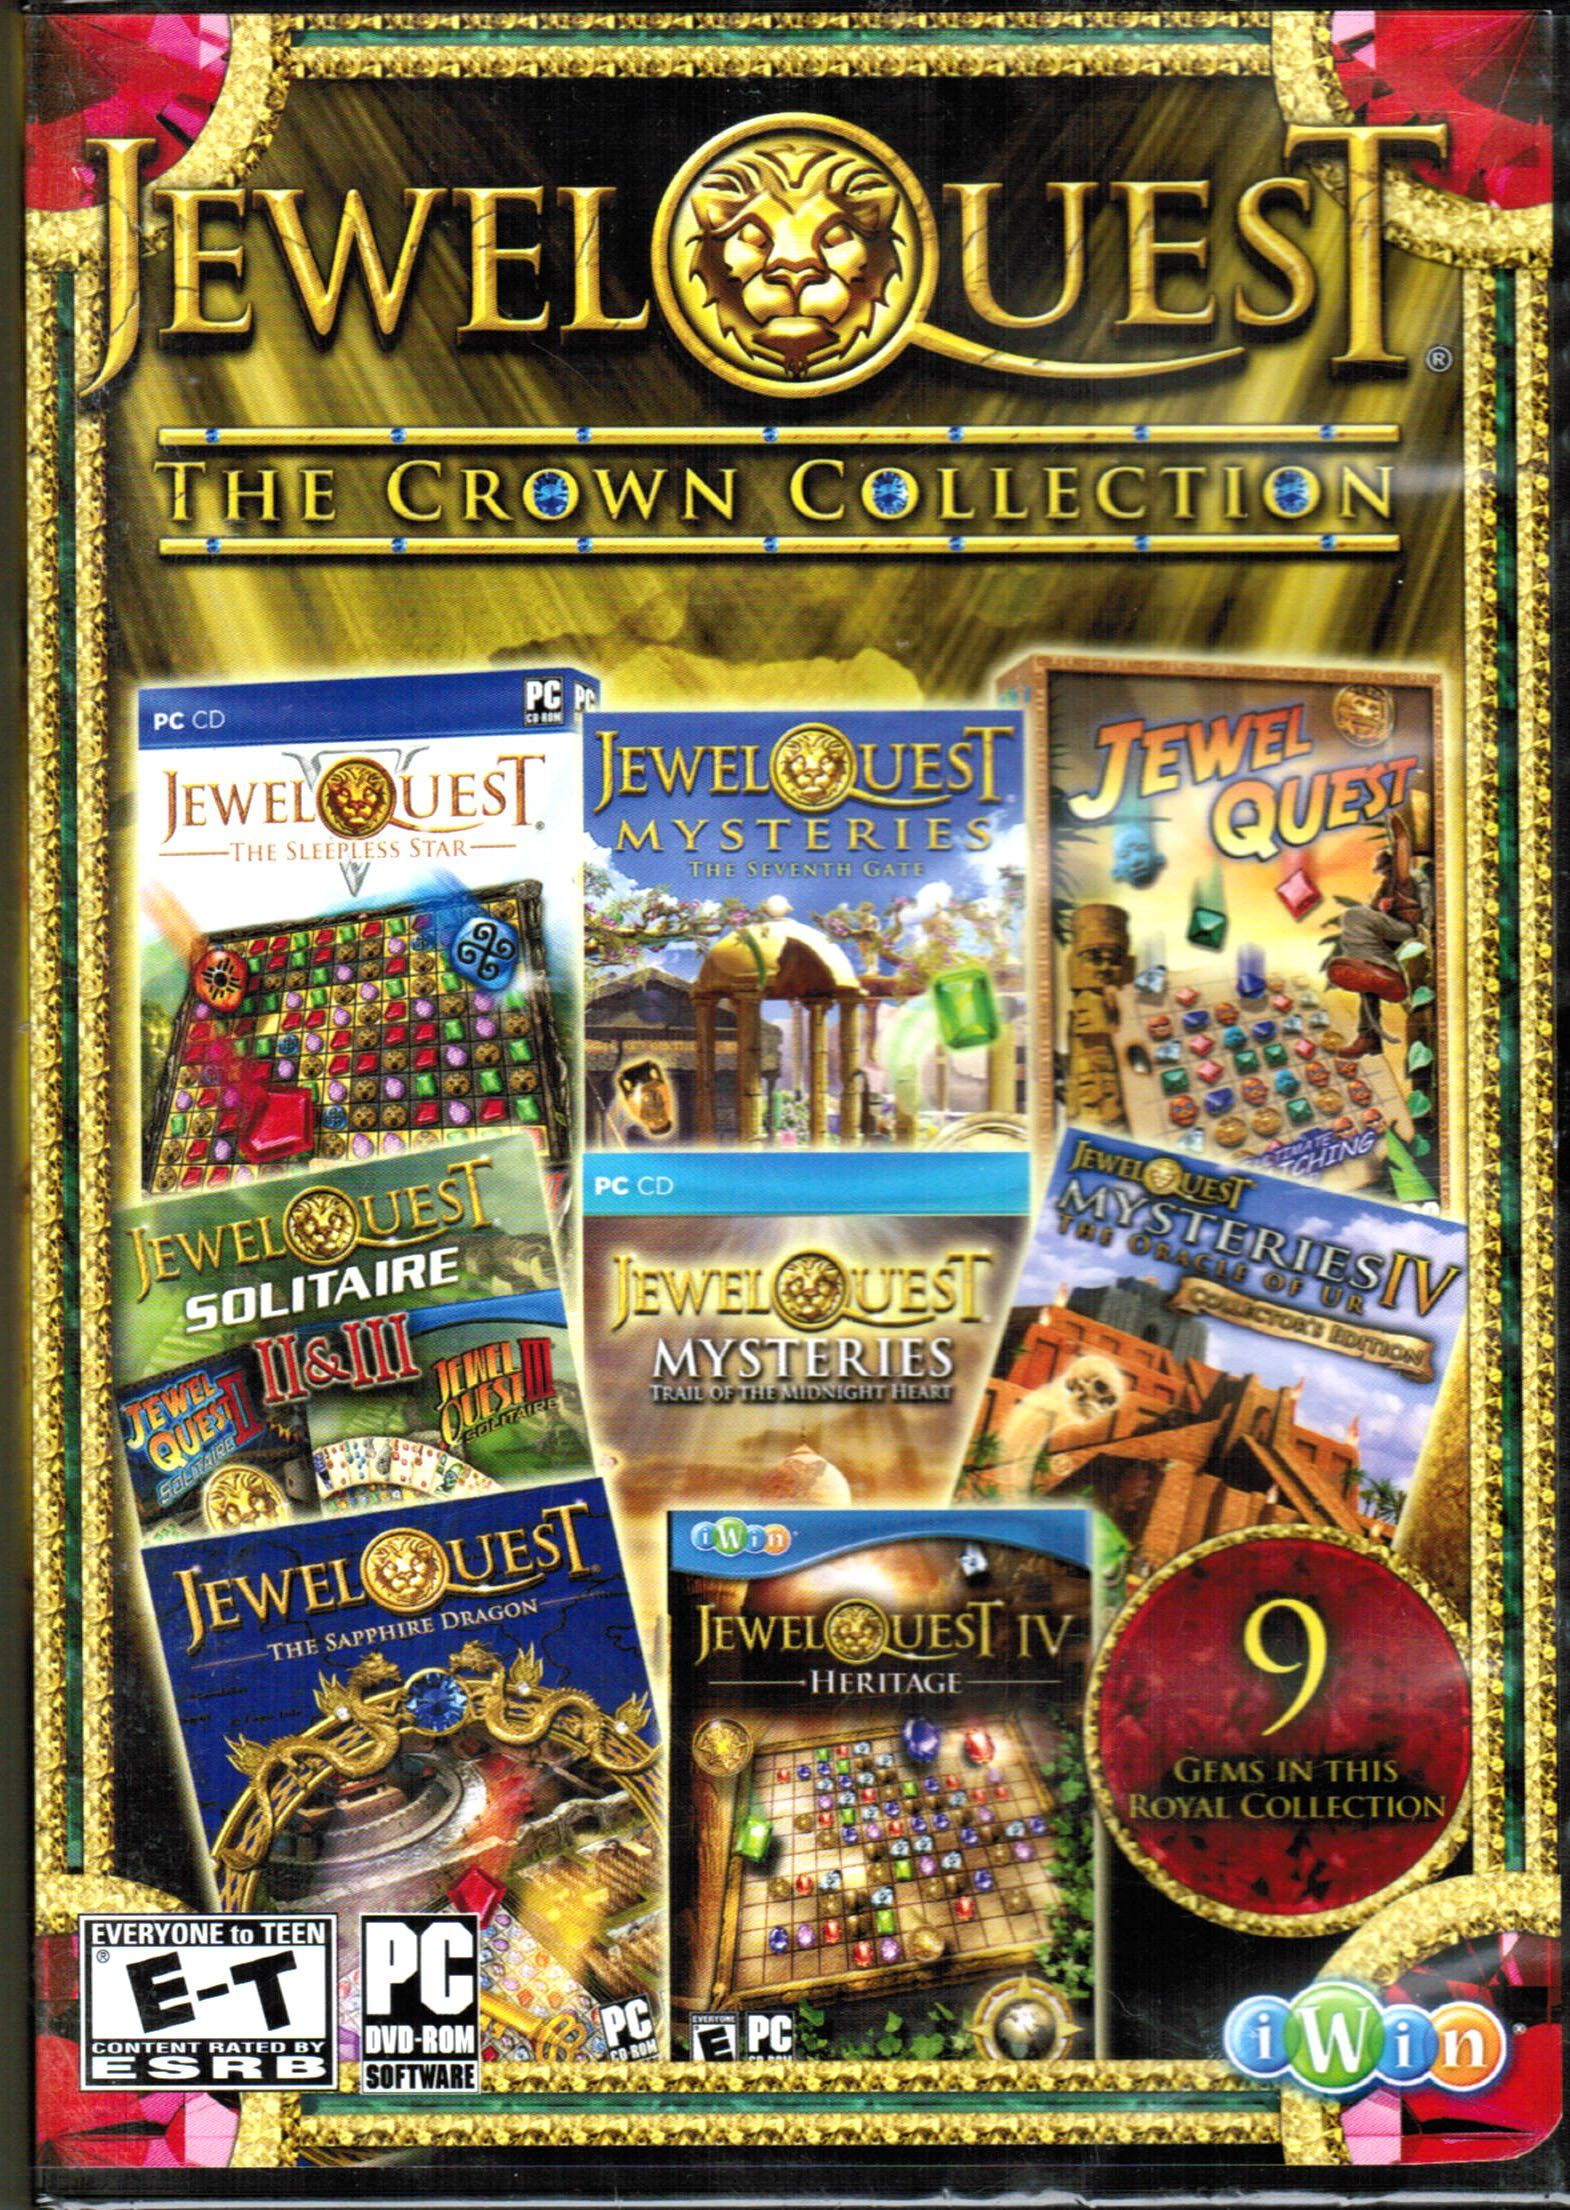 Jewel Quest The Crown Collection (I Win) Gaming pc